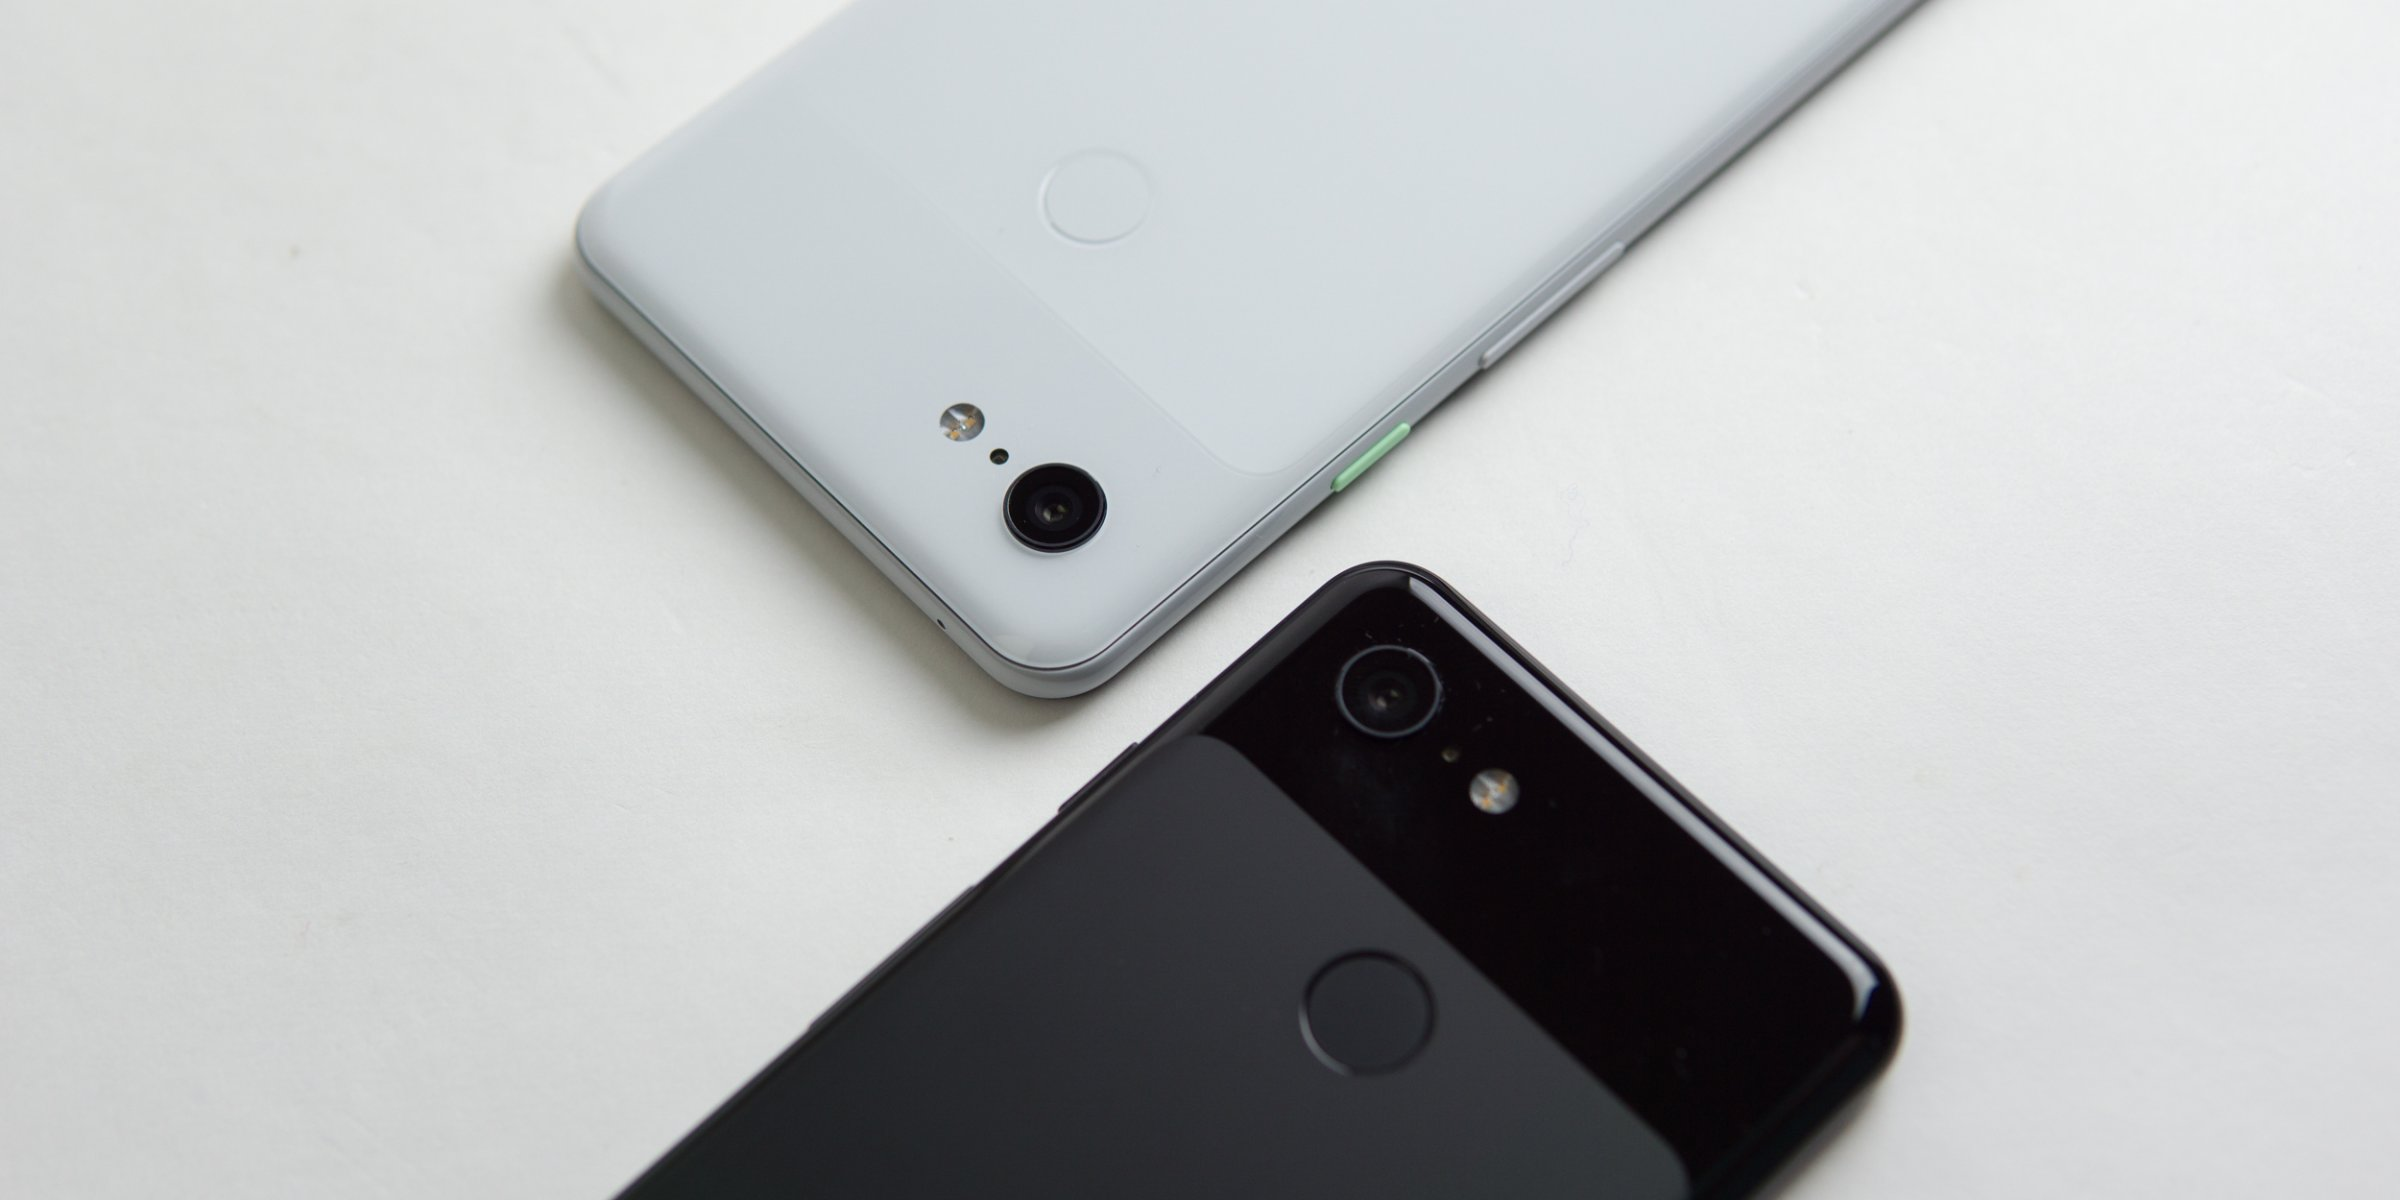 Pixel 3a and Pixel 4